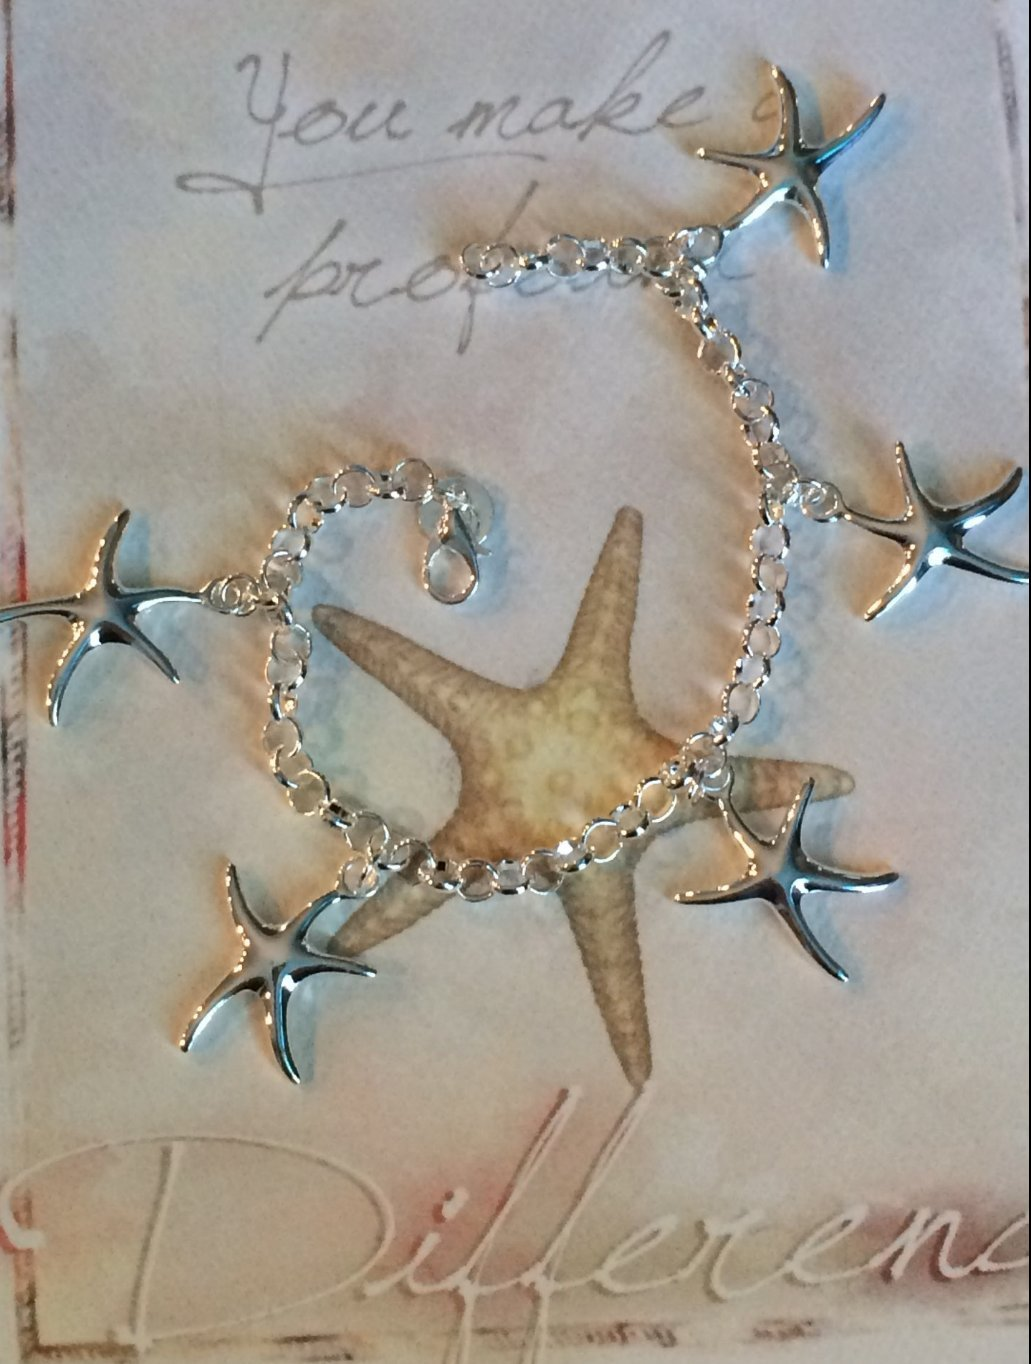 Starfish poem card - Amazon Com Smiling Wisdom Starfish Charm Bracelet Gift Set You Make A Profound Difference Thank You Card Show Admiration Gratitude Appreciation To